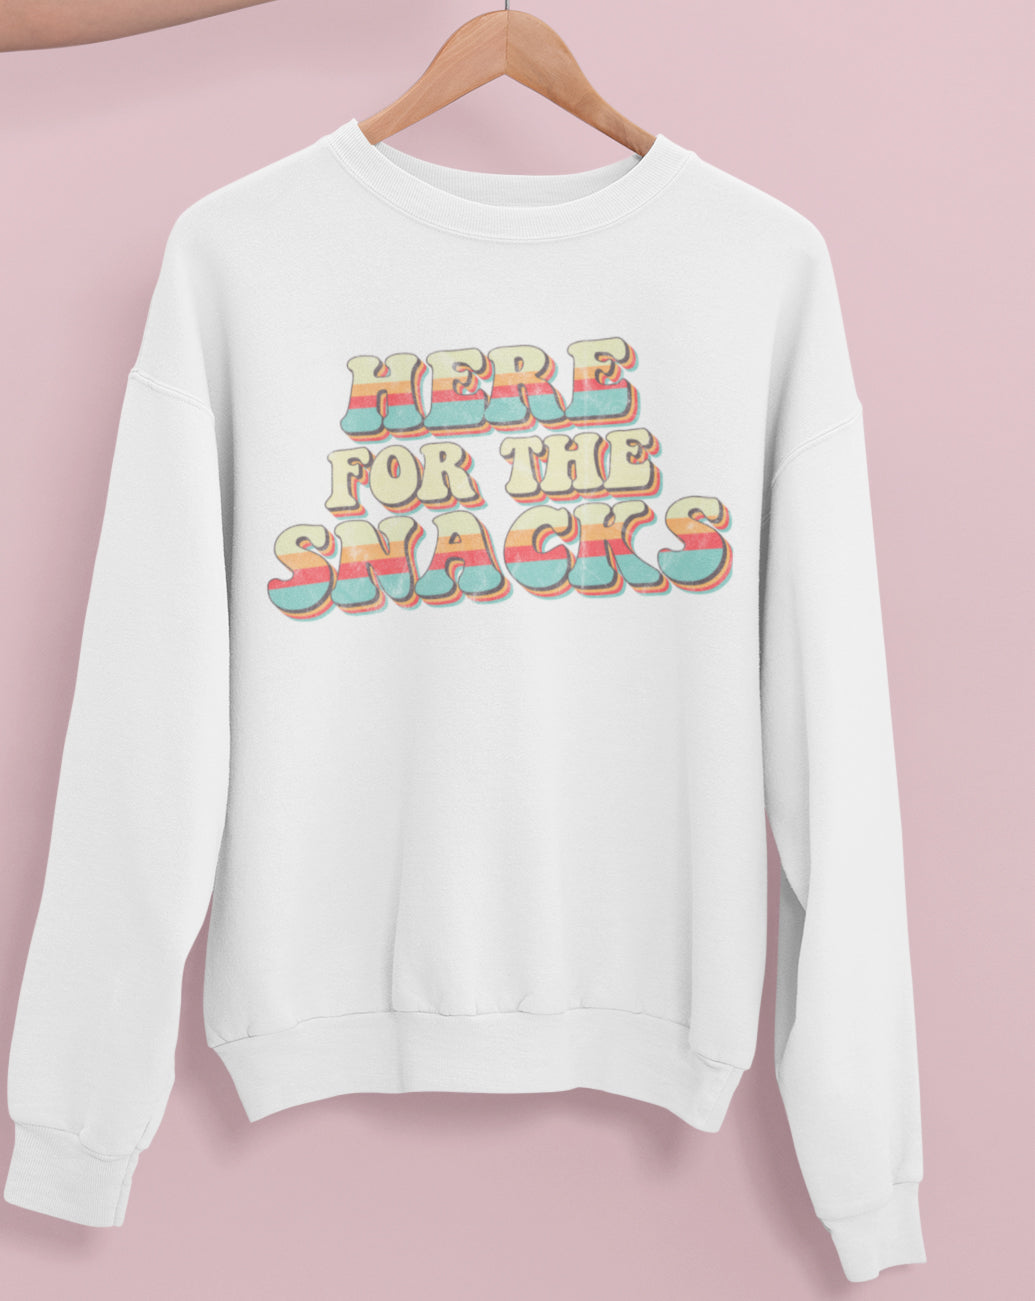 White sweatshirt with colorful retro graphic that says here for the snacks - HighCiti